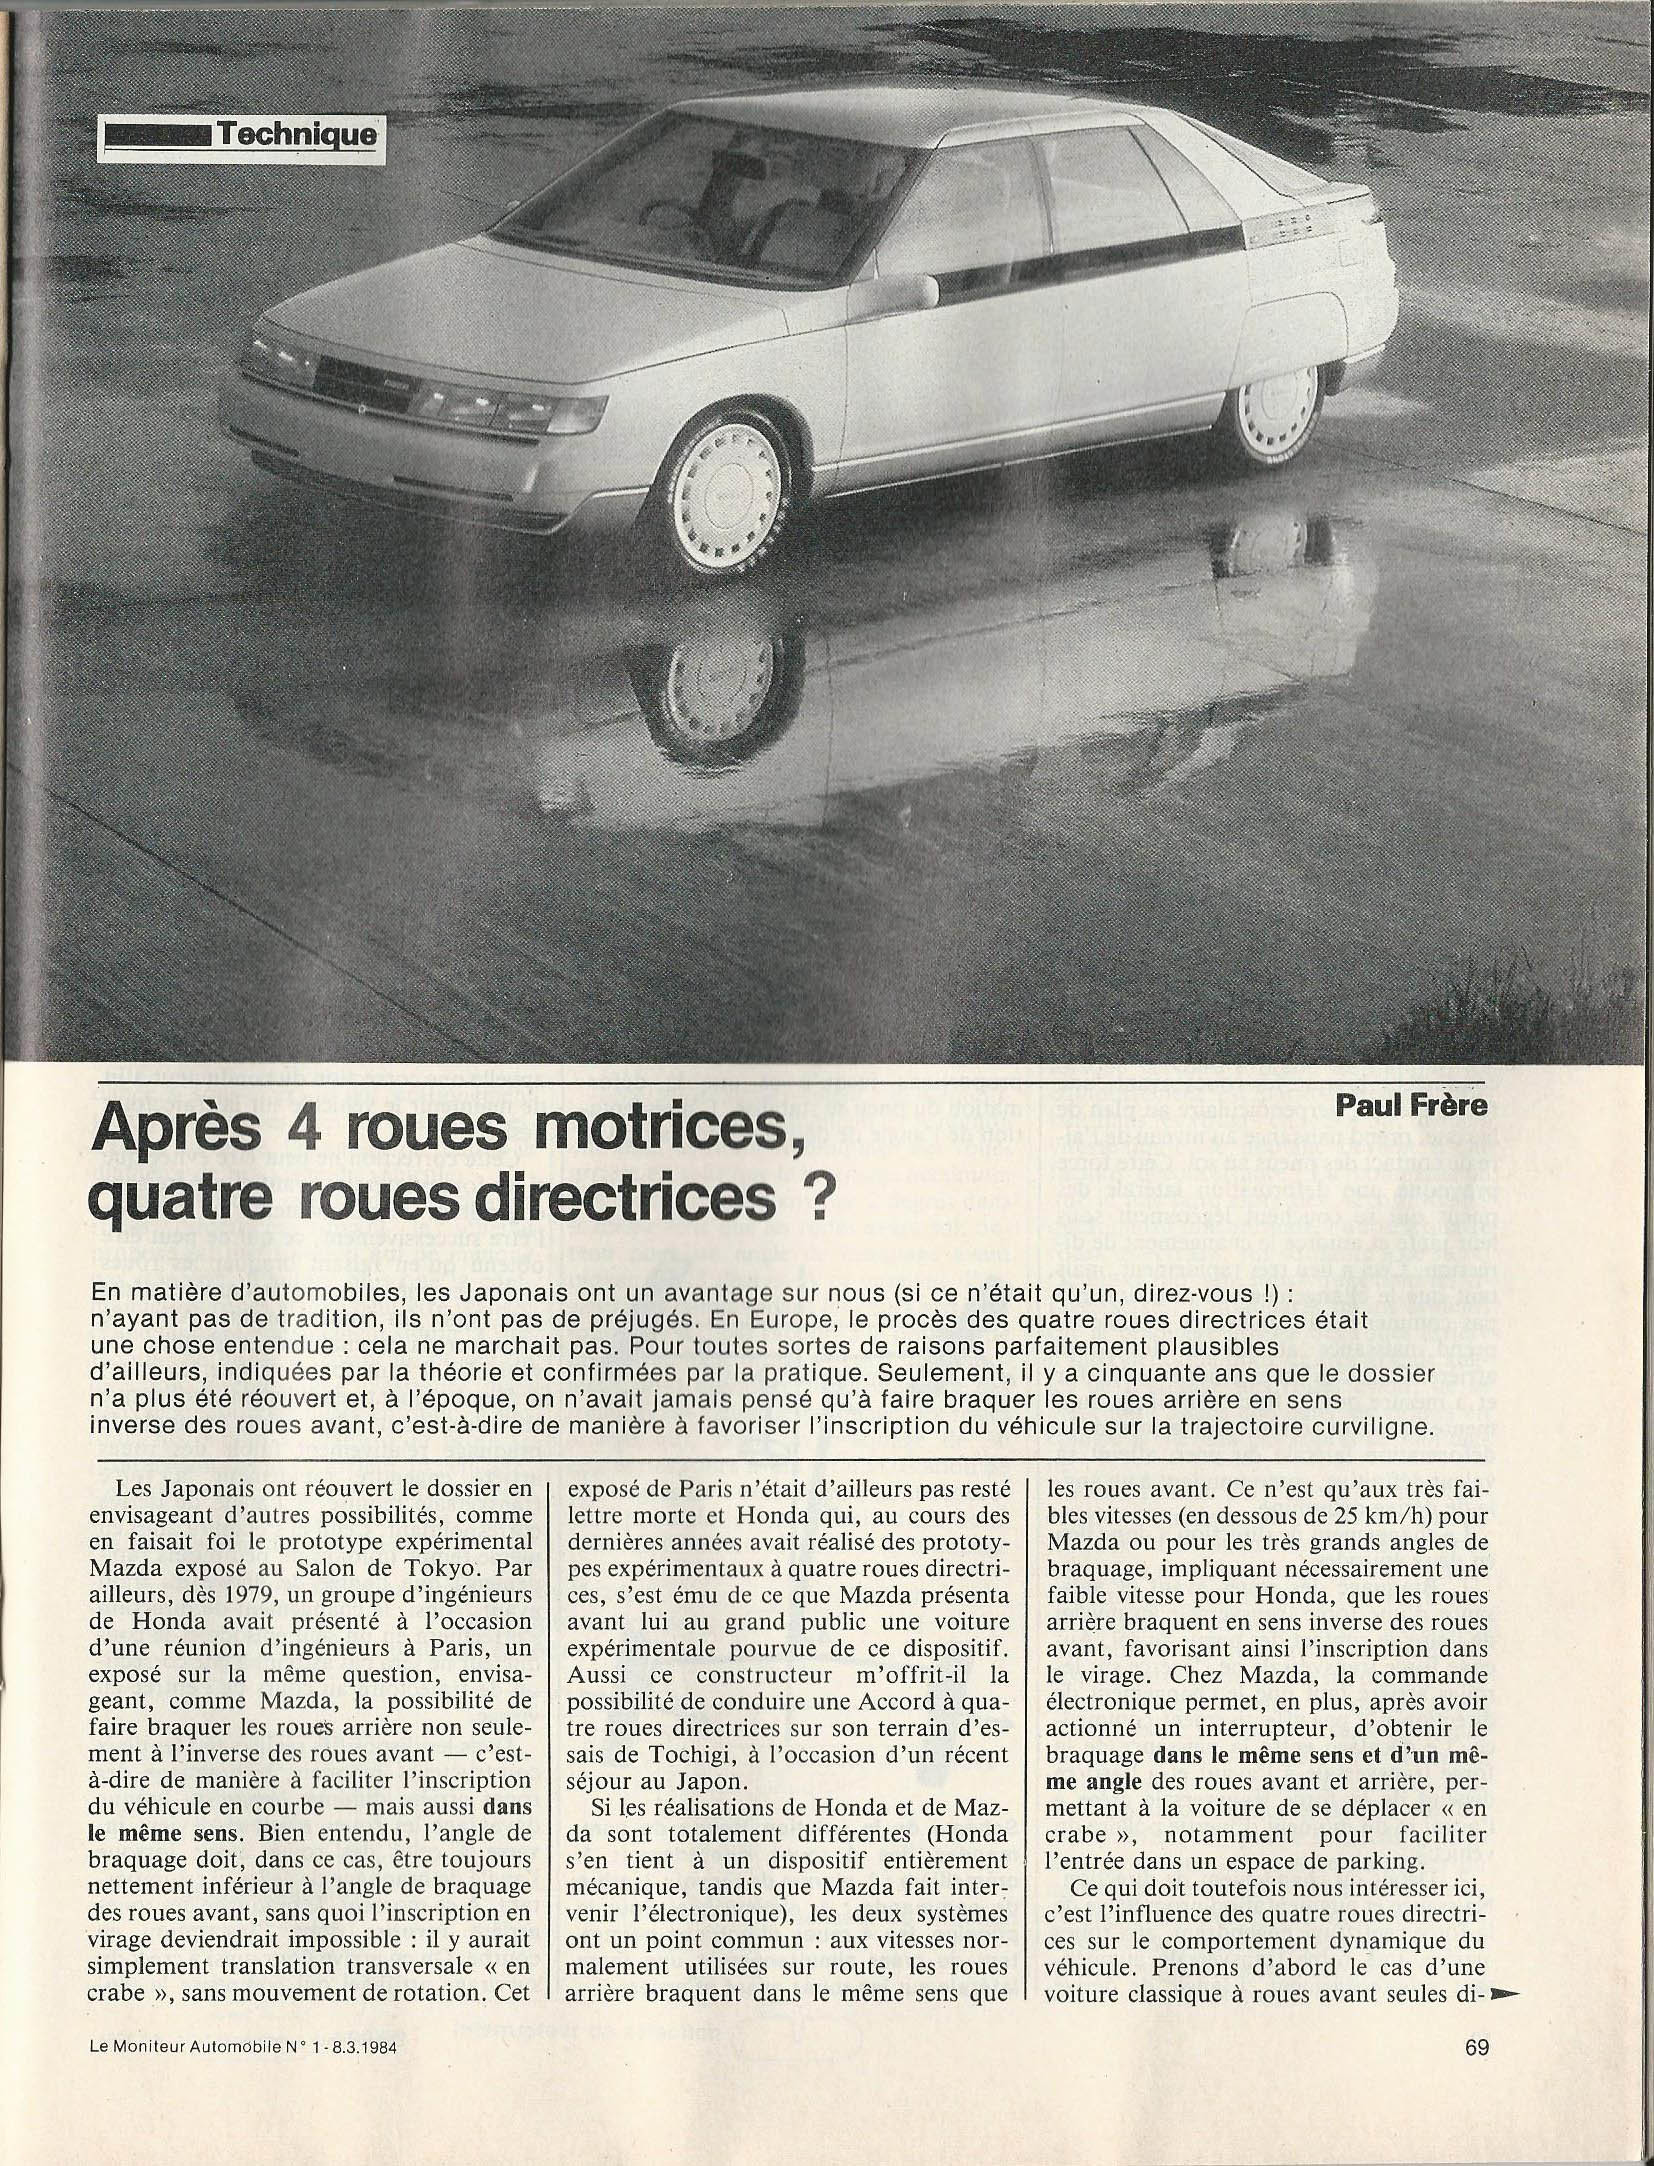 Moniteur Automobile 01 - 08 Mars 1984 (27)